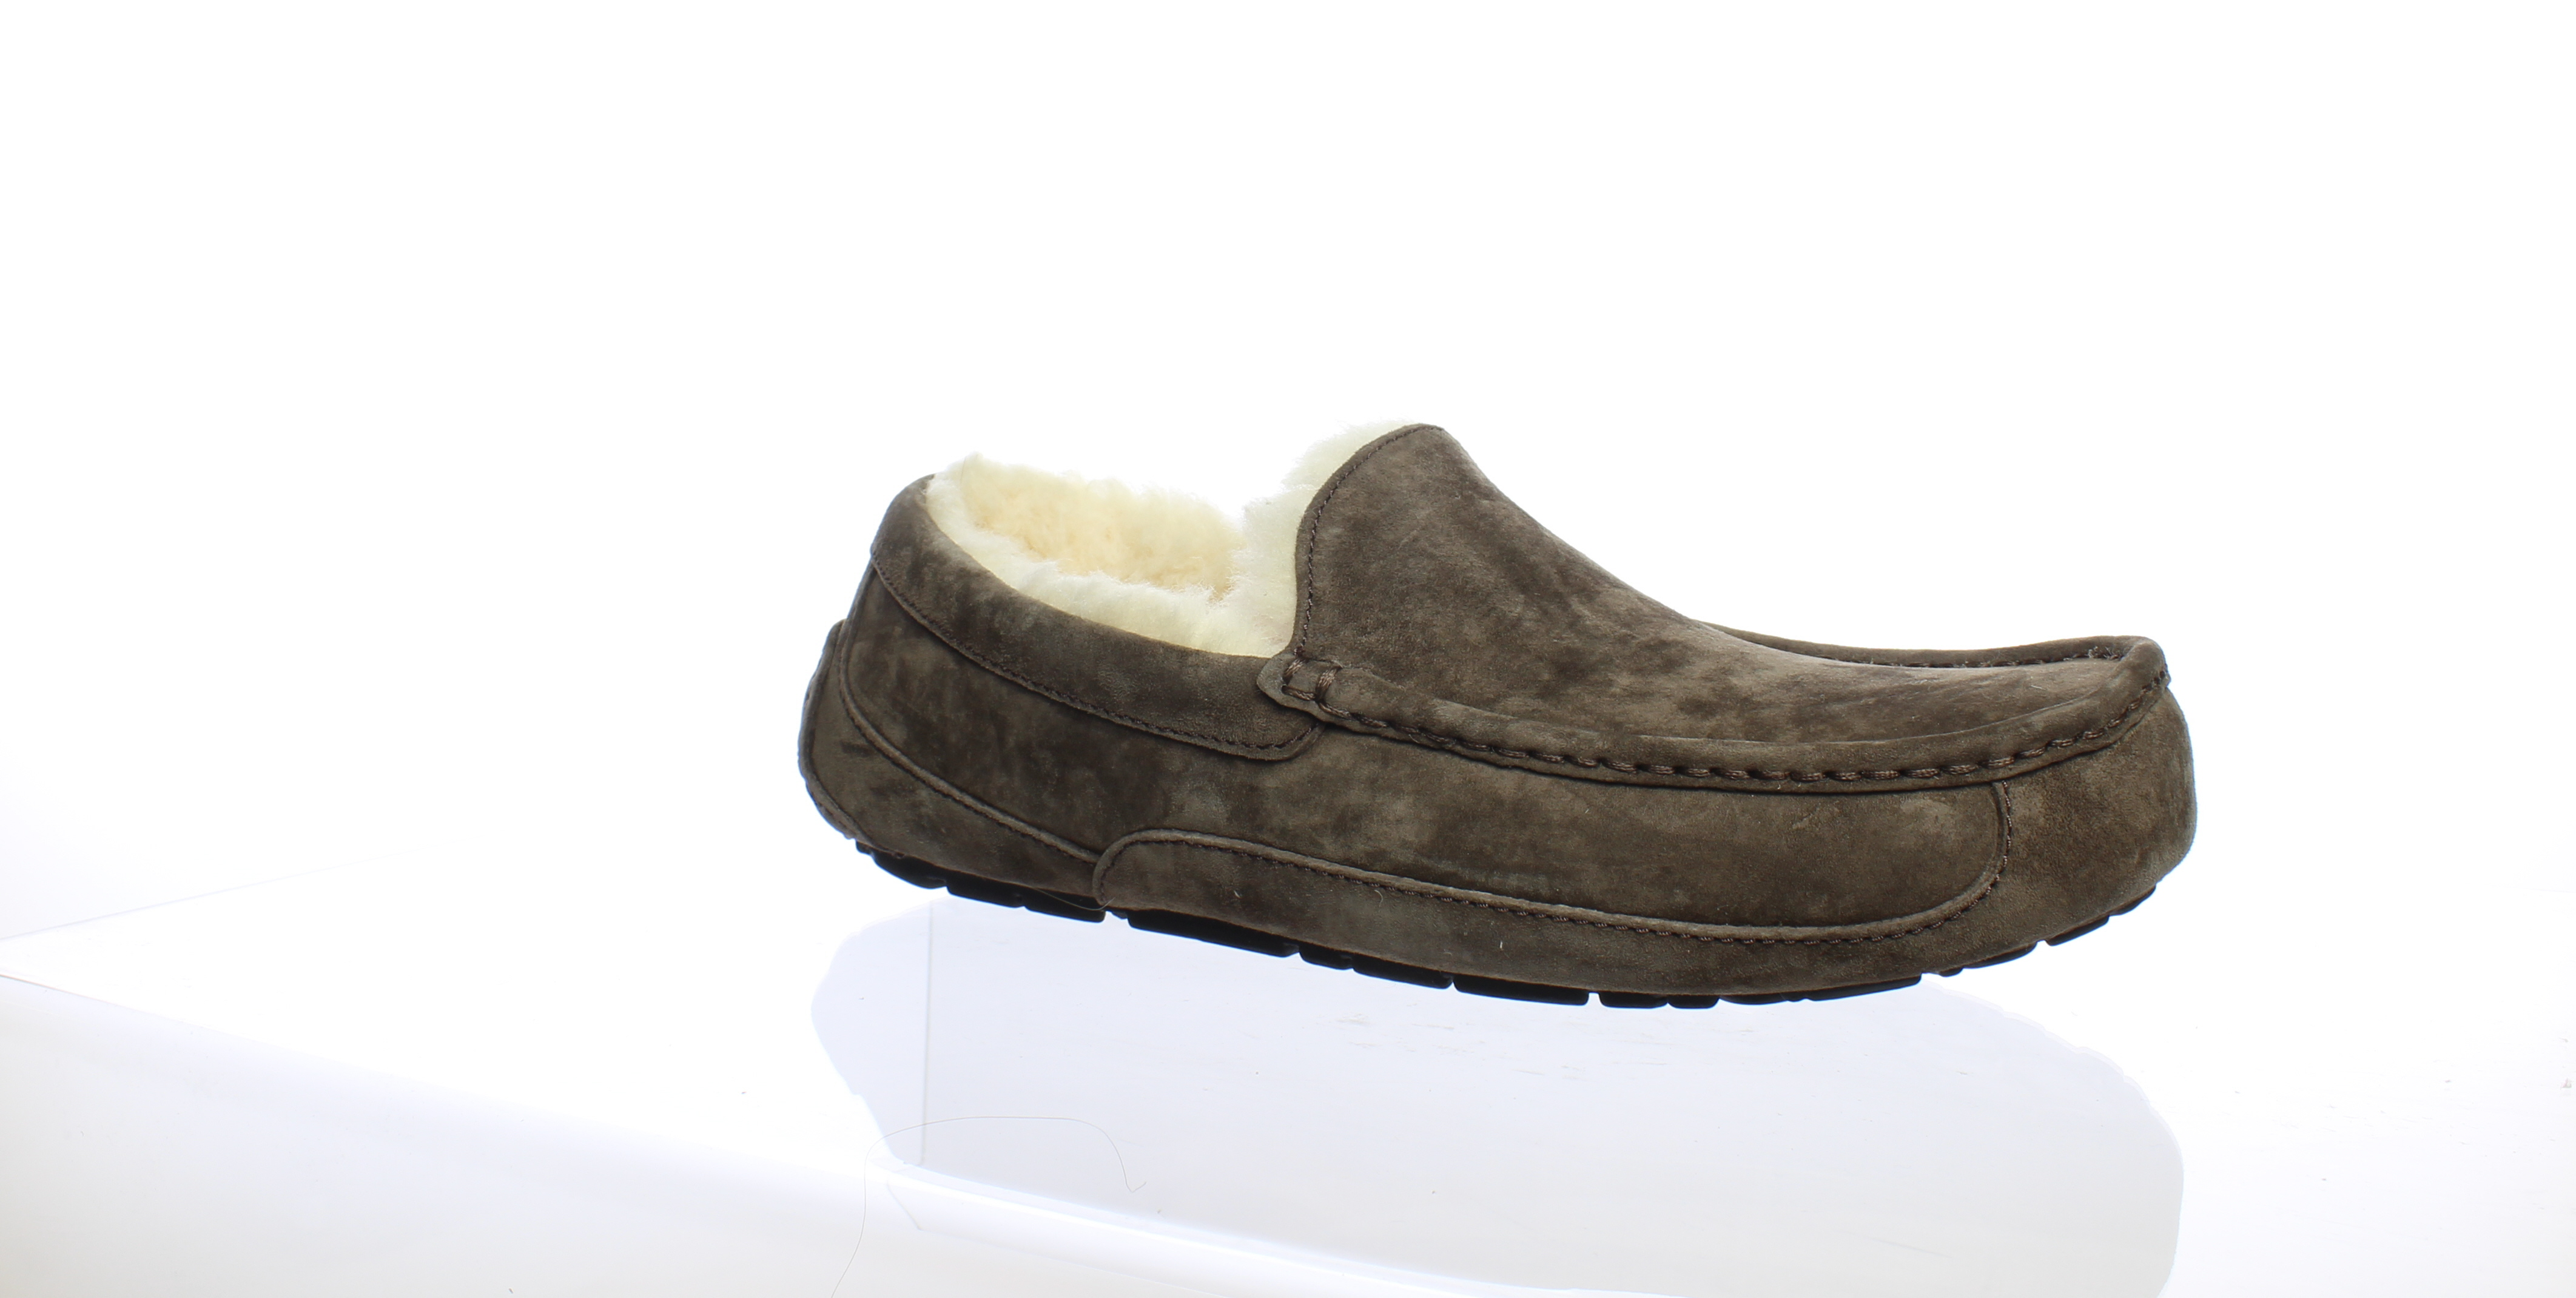 3346594c526 Details about UGG Mens Ascot Espresso Moccasin Slippers Size 10 (199000)